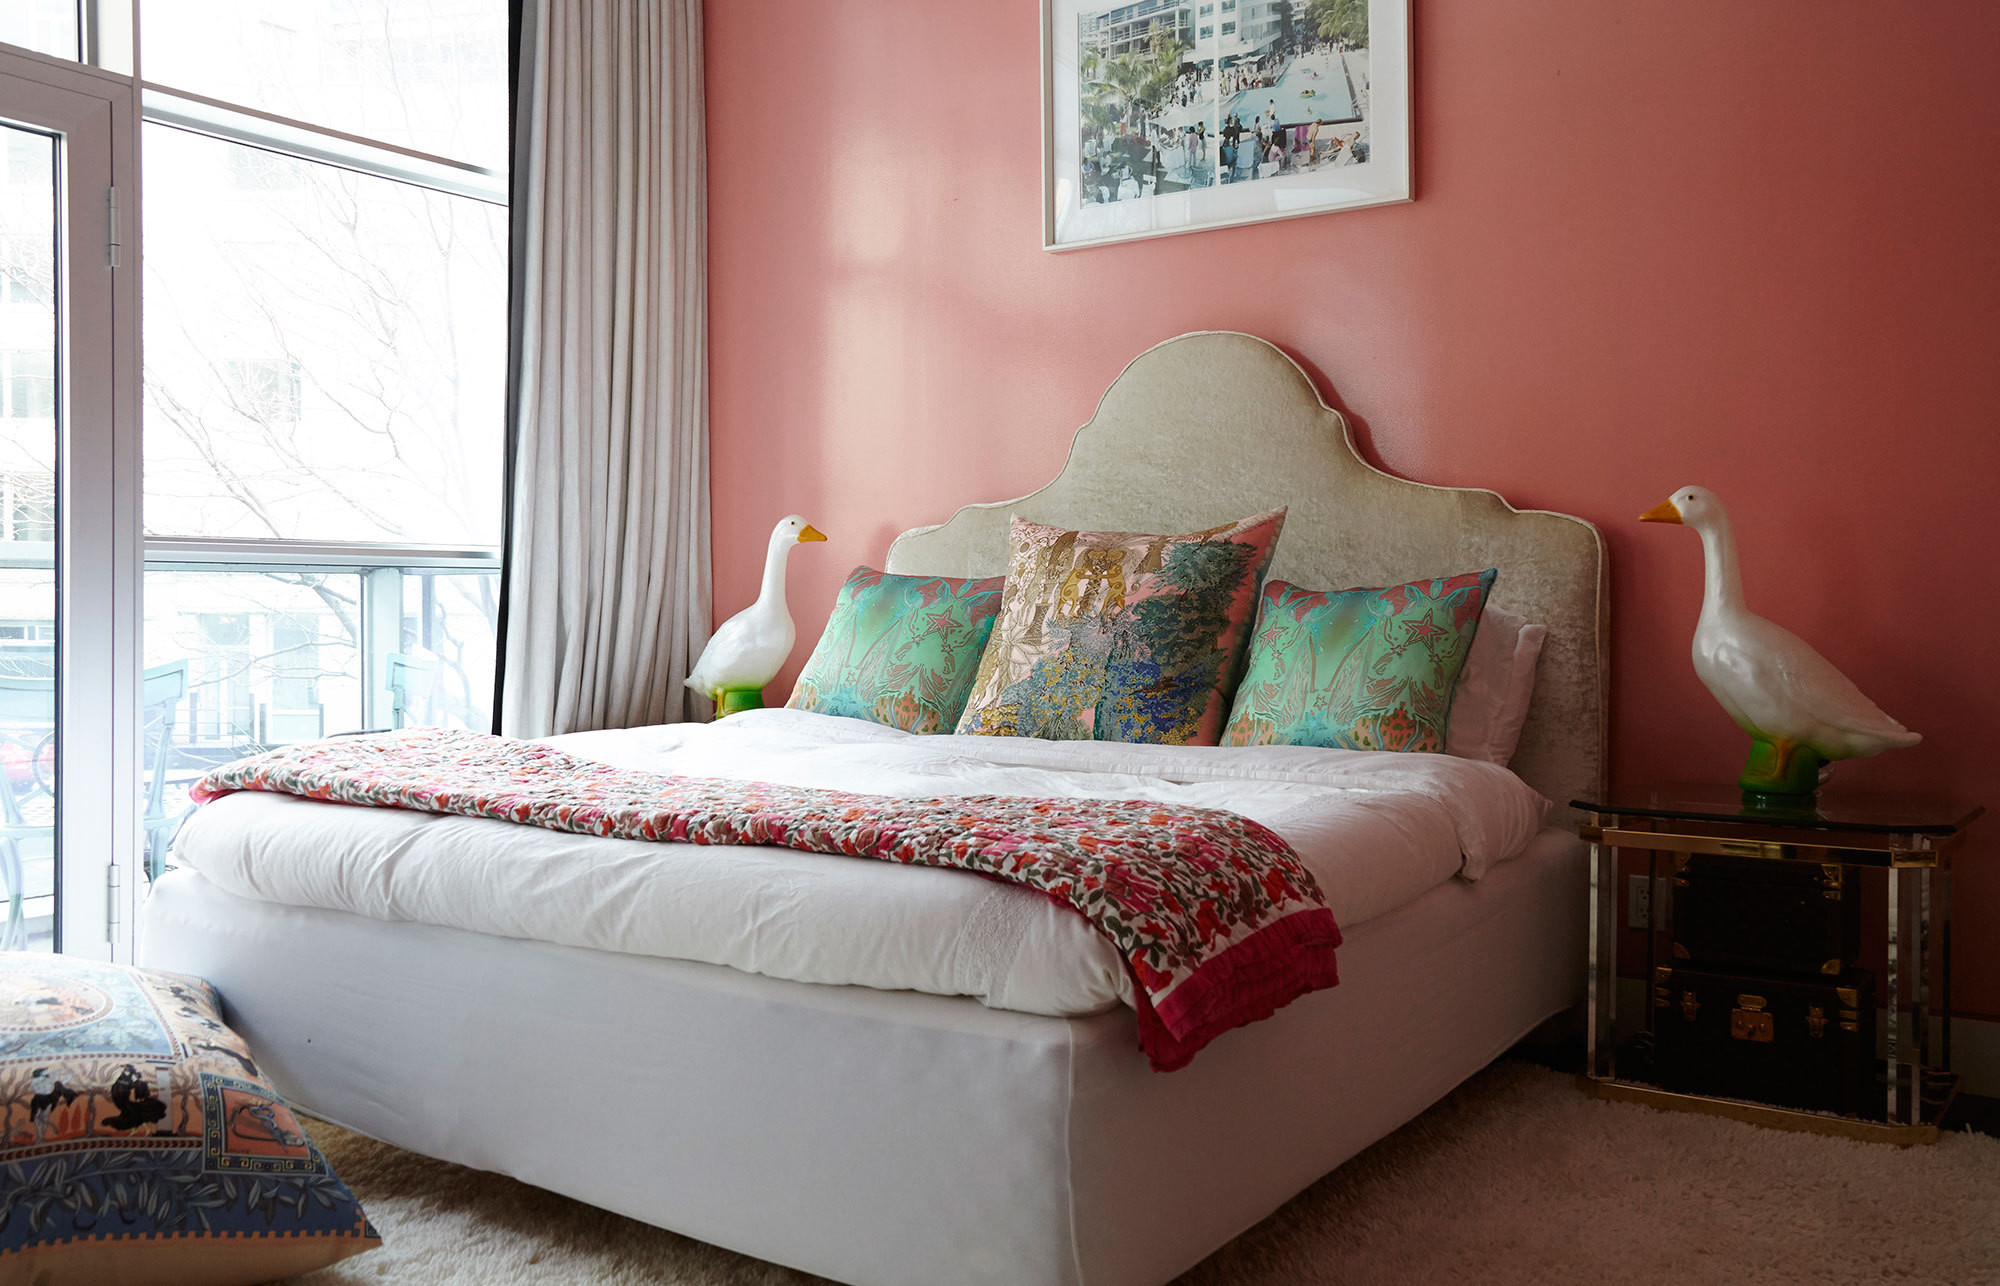 Fine Paints of Europe's Coral Rose creates a cozy, boudoir feel in the master suite. The throw pillows are made from designer scarves, and the geese lamps are vintage.